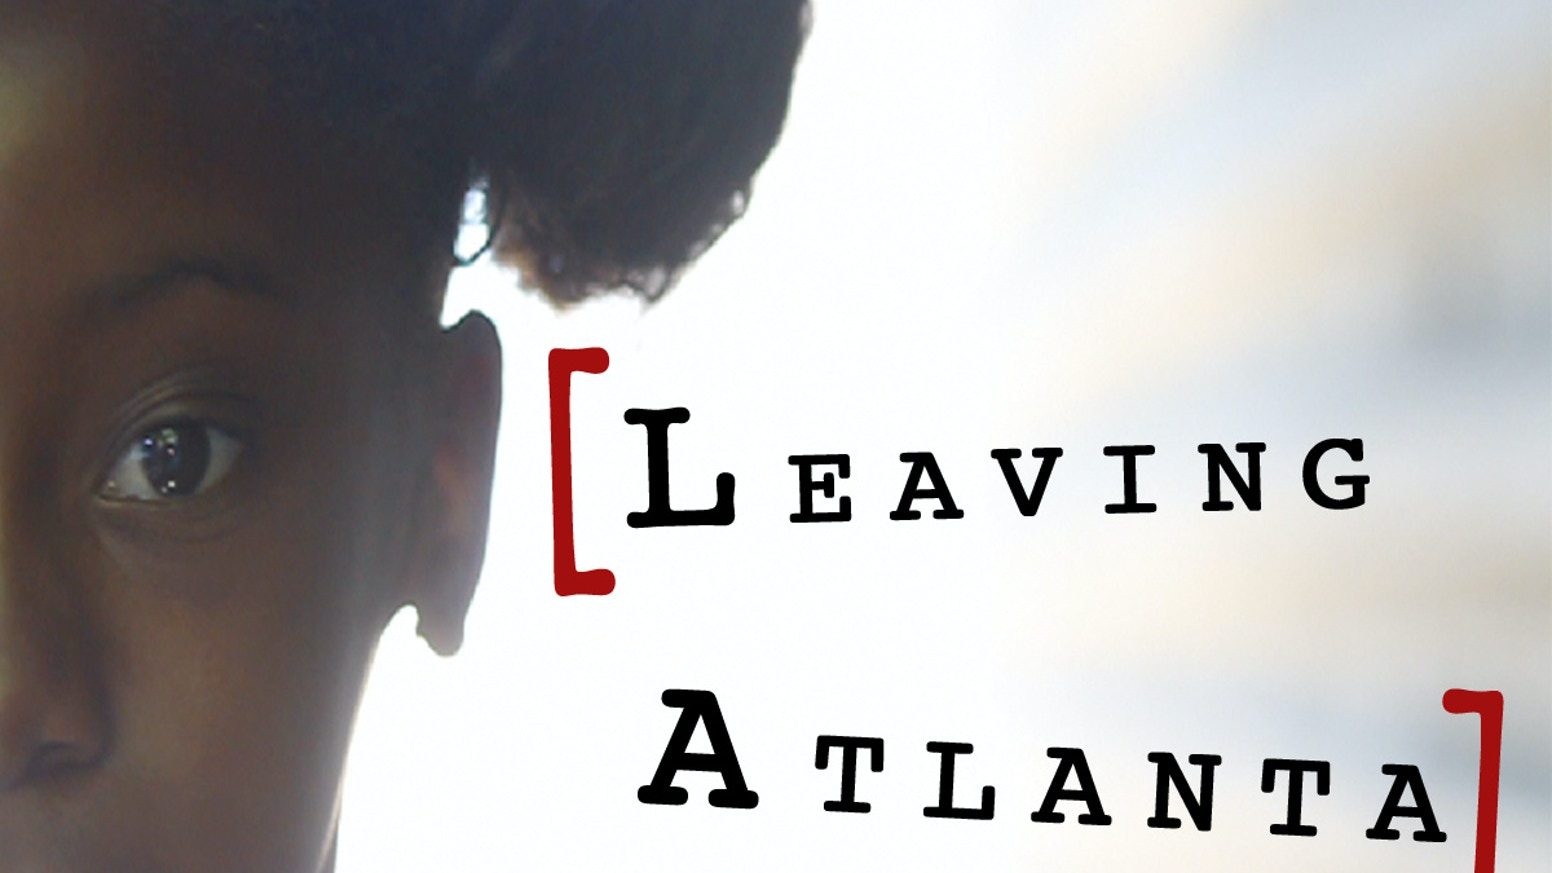 Leaving Atlanta The Film